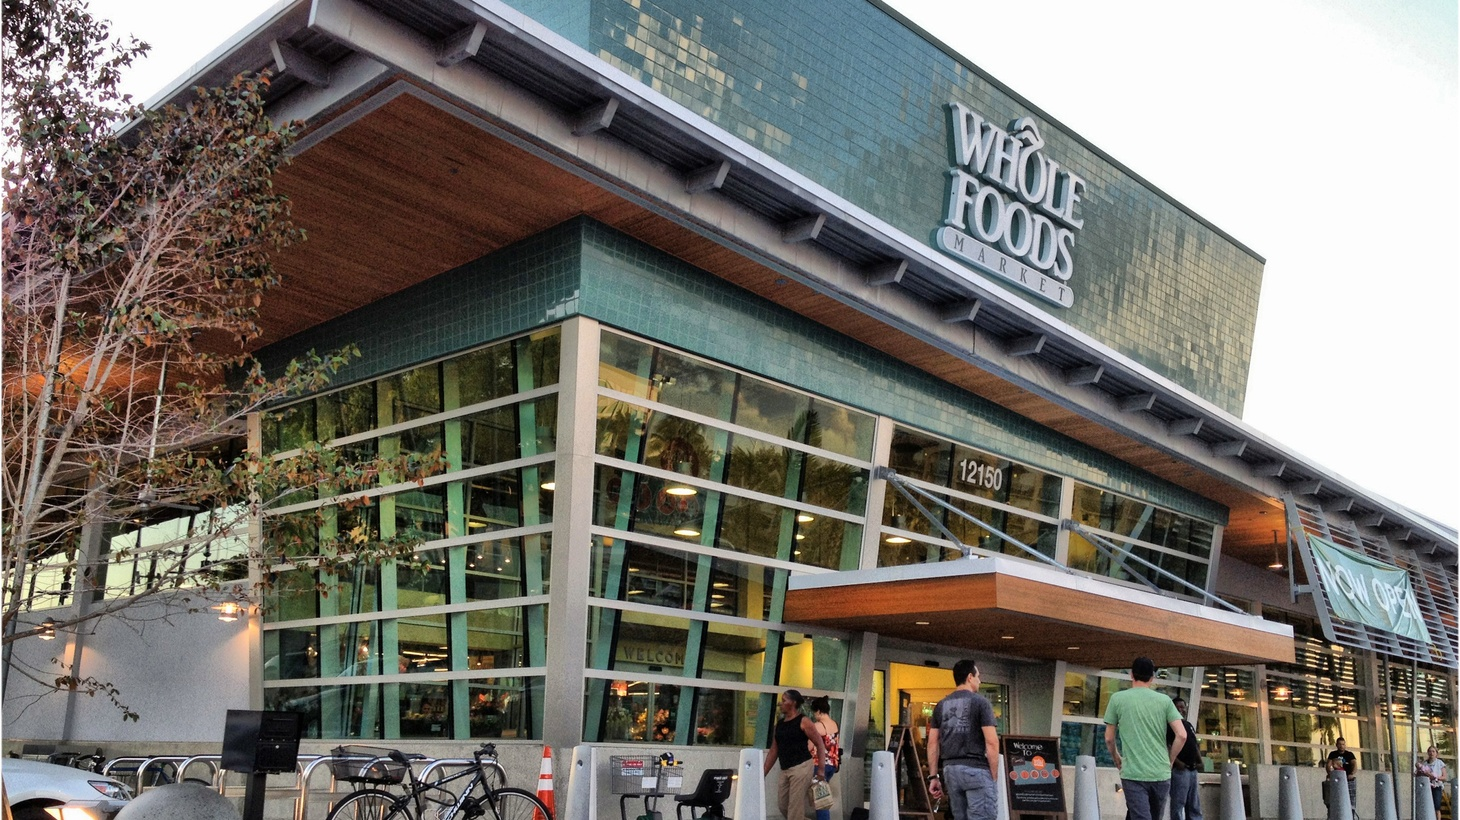 Amazon plans to spend $13.7 billion to buy Whole Foods Market, which has more than 450 locations. Shareholders of Whole Foods Markets still have to approve the deal. But it's a big moment for Amazon, which has struggled to find its niche in the $800 billion grocery business.